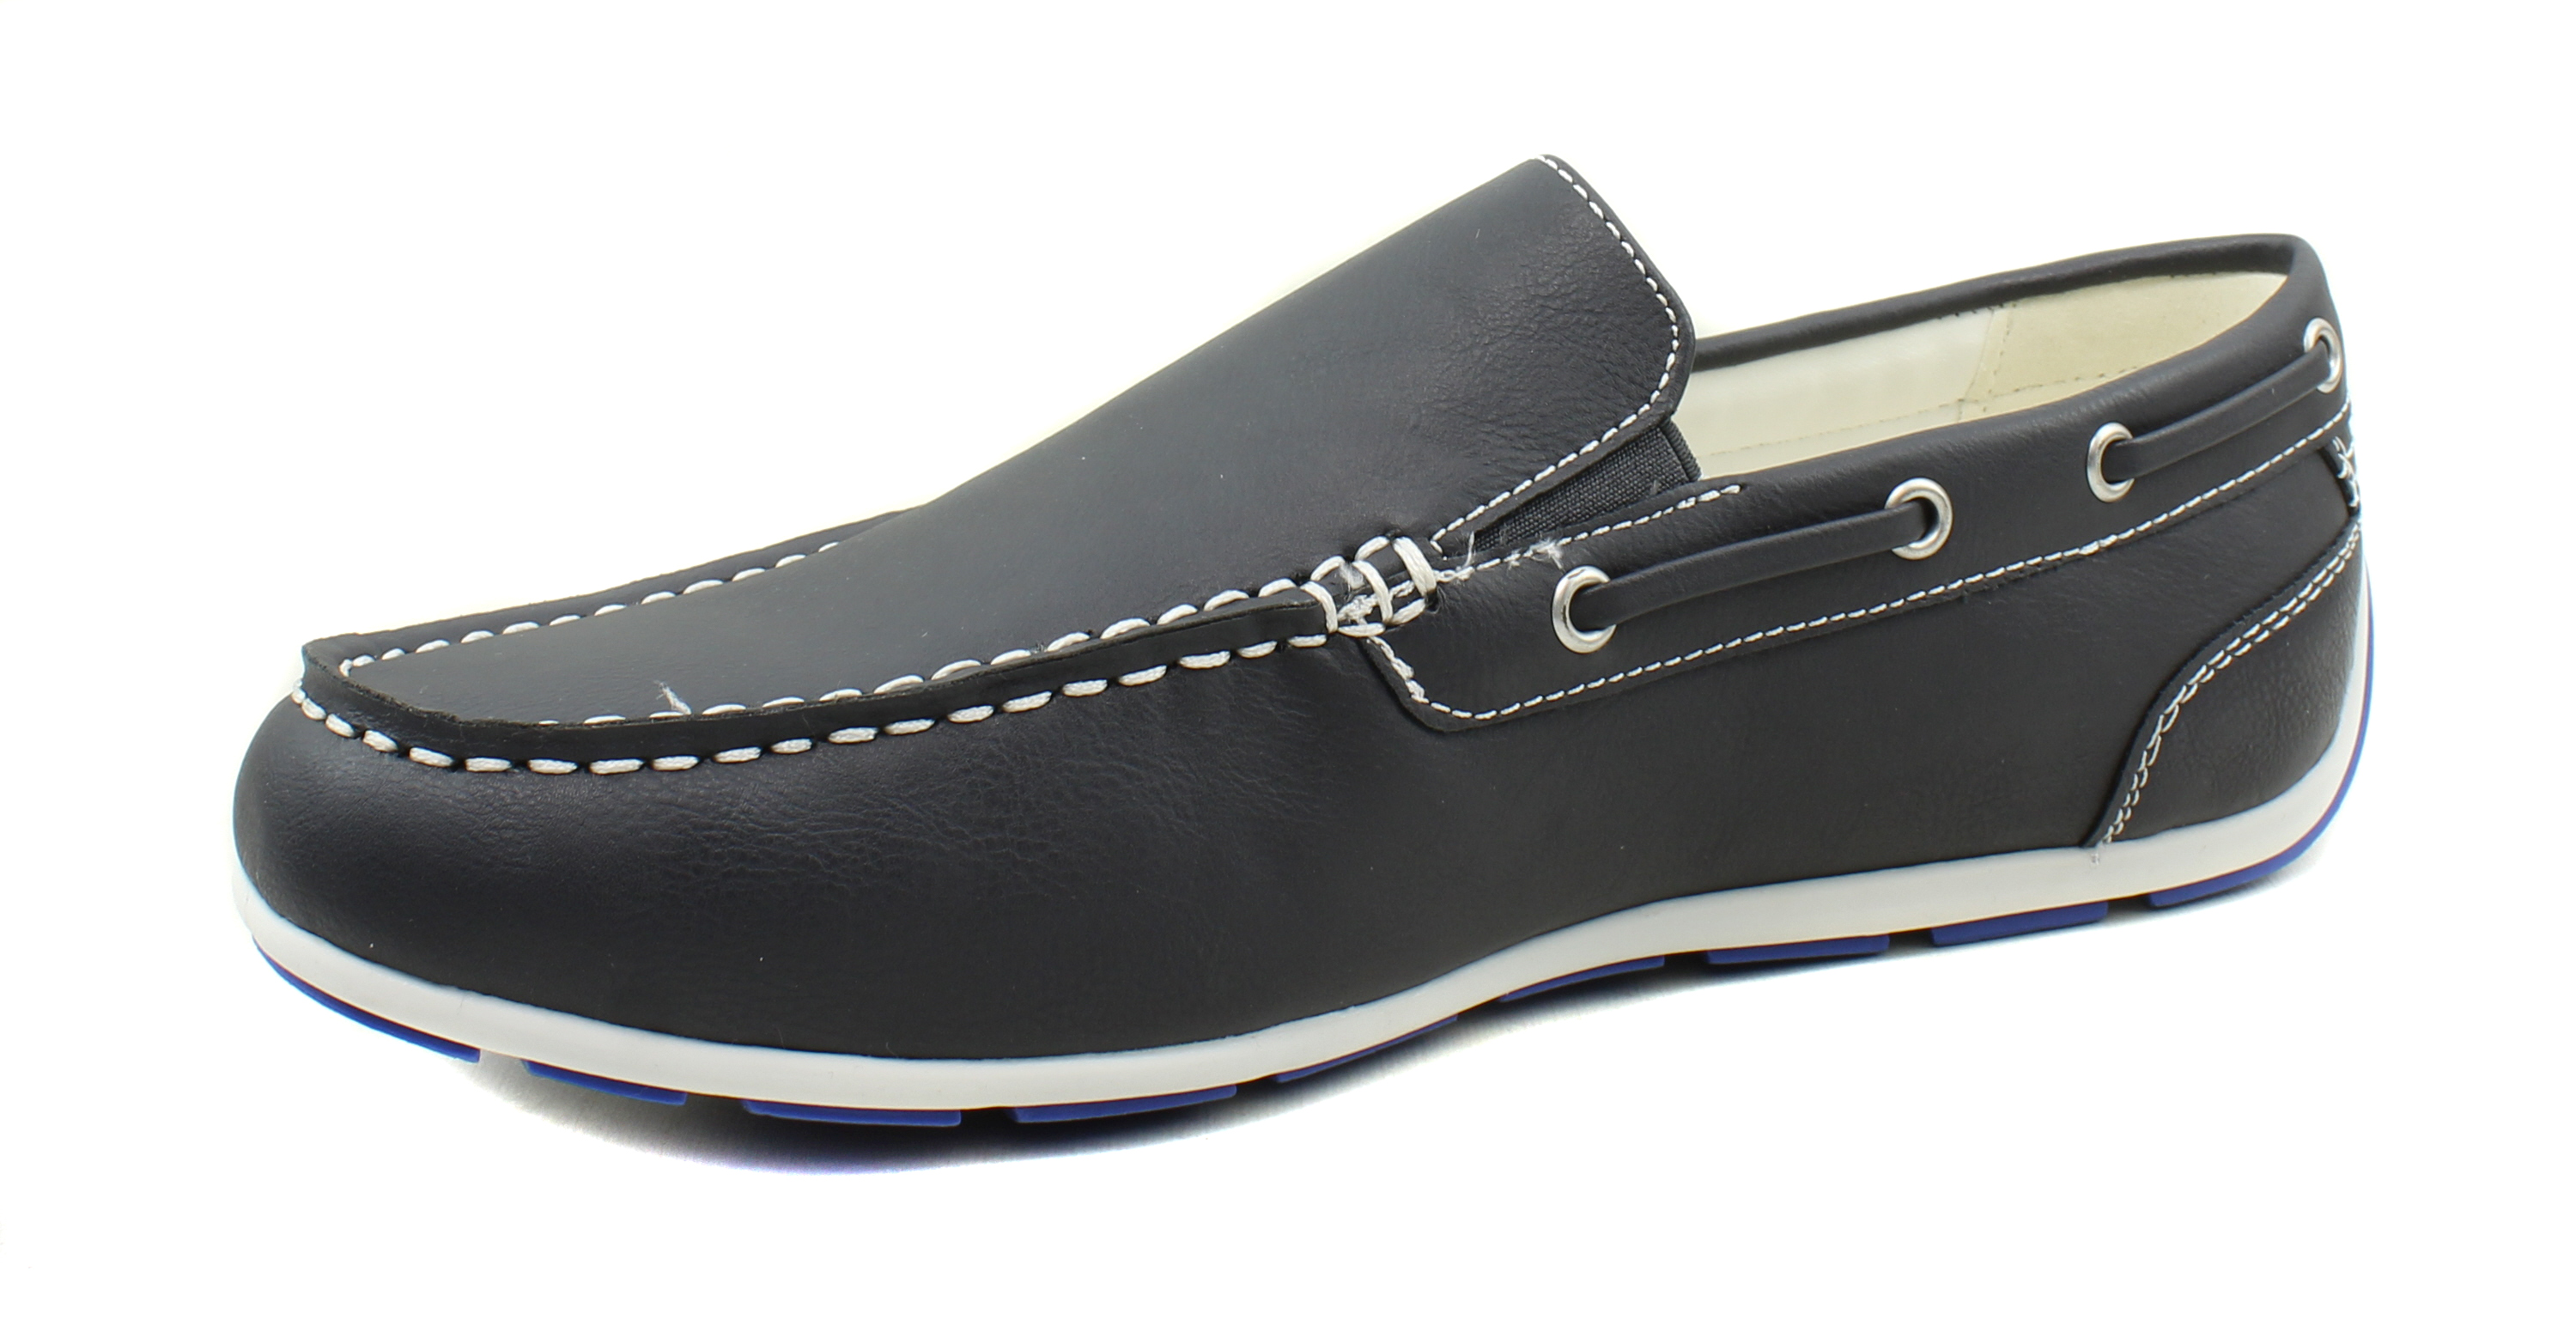 GBX-Homme-Ludlam-Casual-Moc-toe-Slip-on-Chaussures-Bateau-Driving-Loafers miniature 23